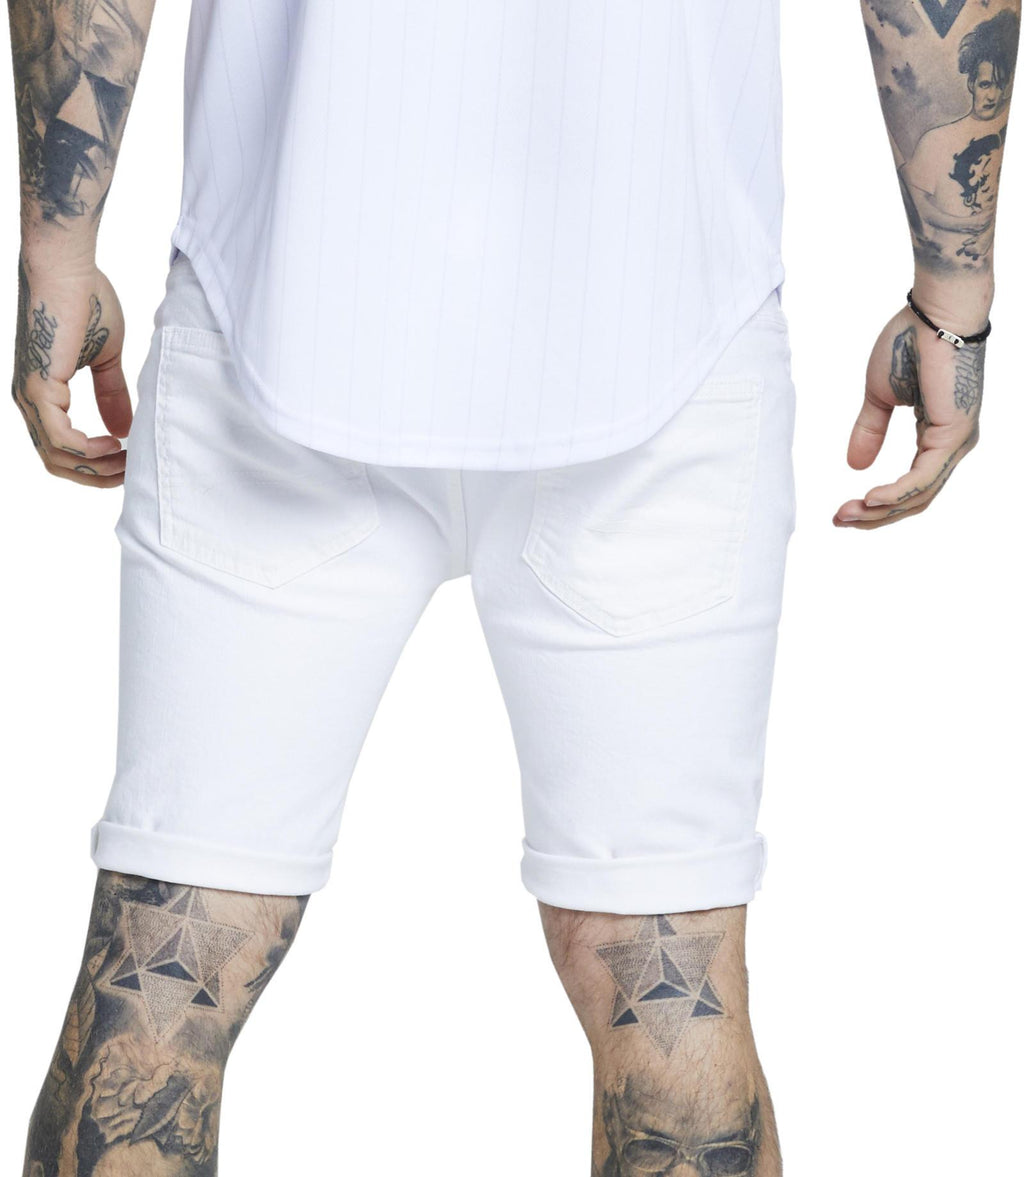 Sik Silk Distressed Skinny Fit Denim Shorts White